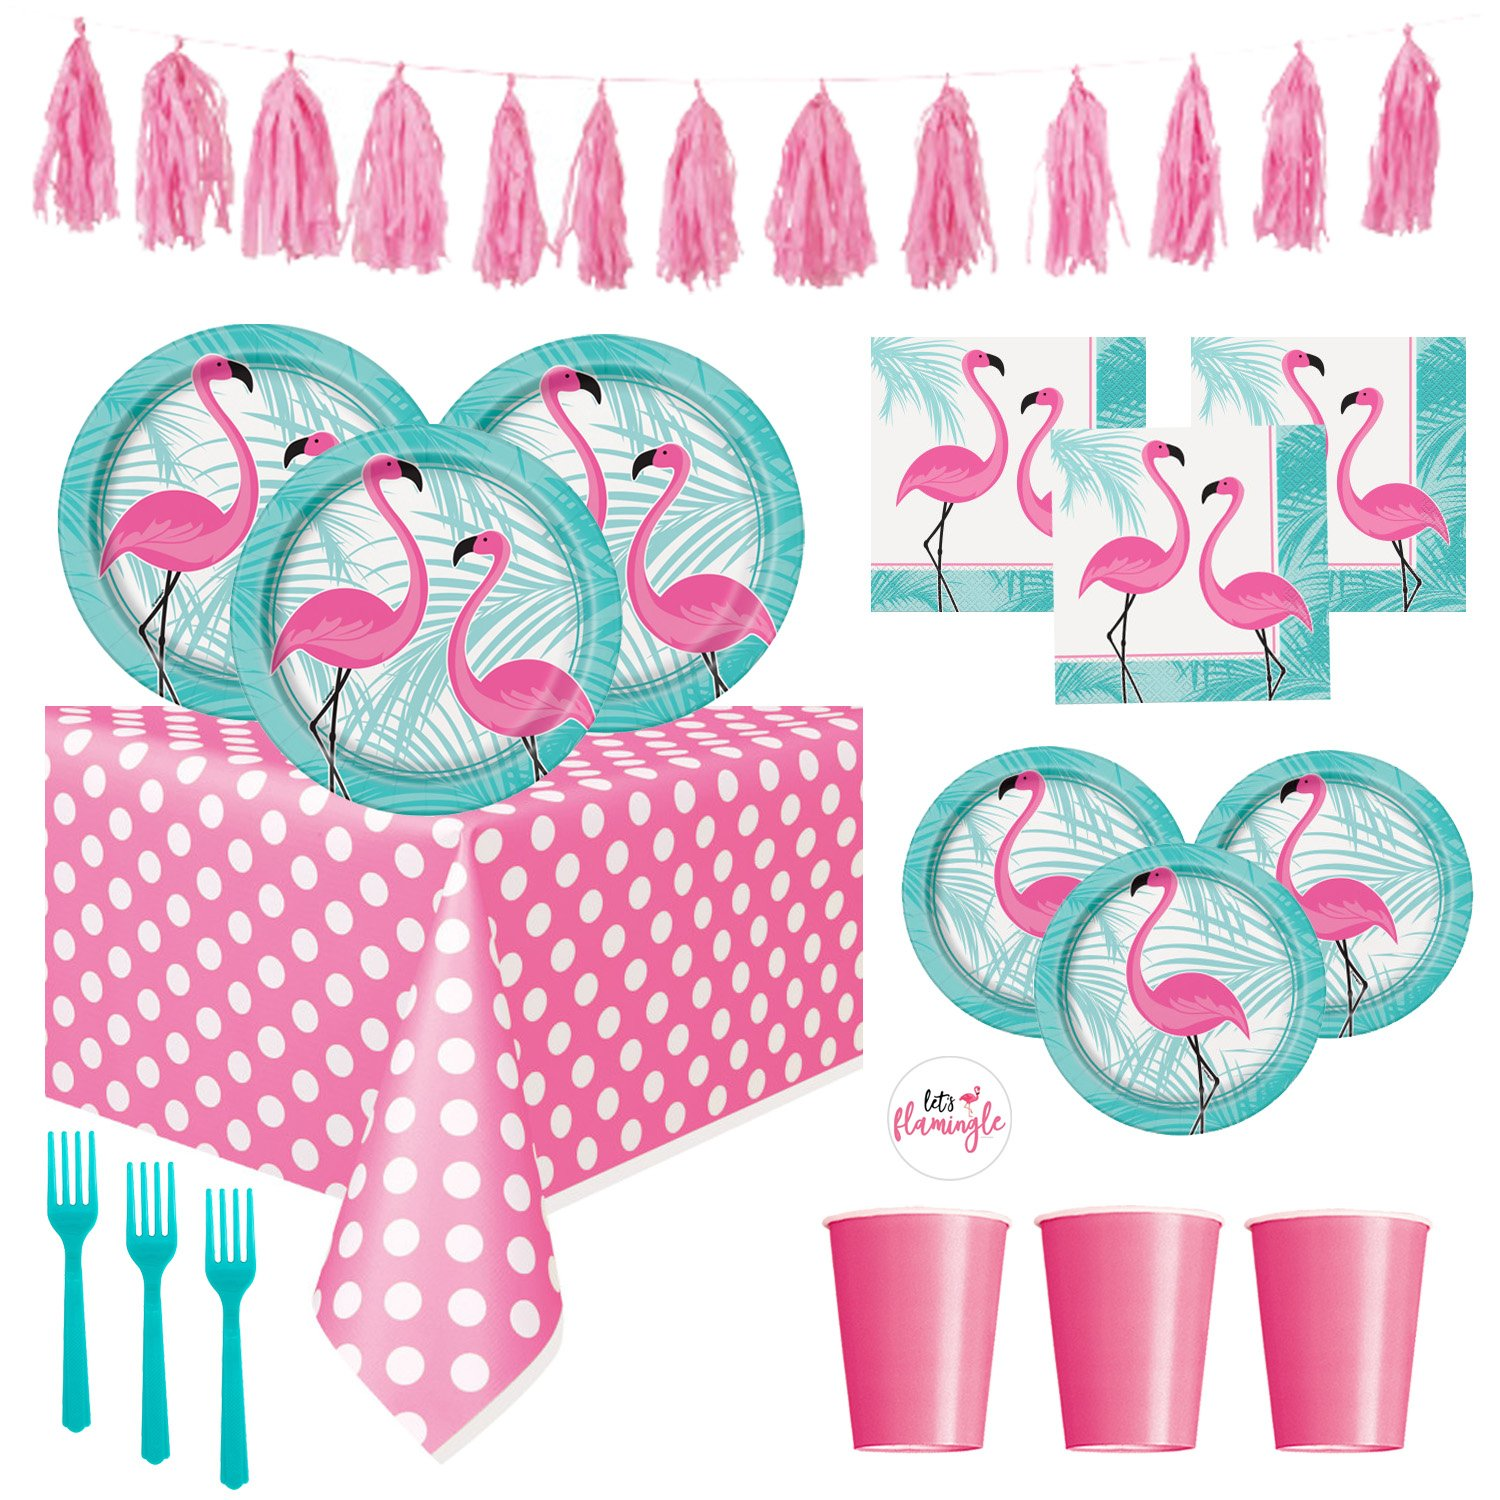 FLAMINGO Theme Party Supplies Pack - Bright Color Plates, Cups, Napkins and Decorations for Pool Party or Luau (Deluxe - Serves 16) by FLAMINGO